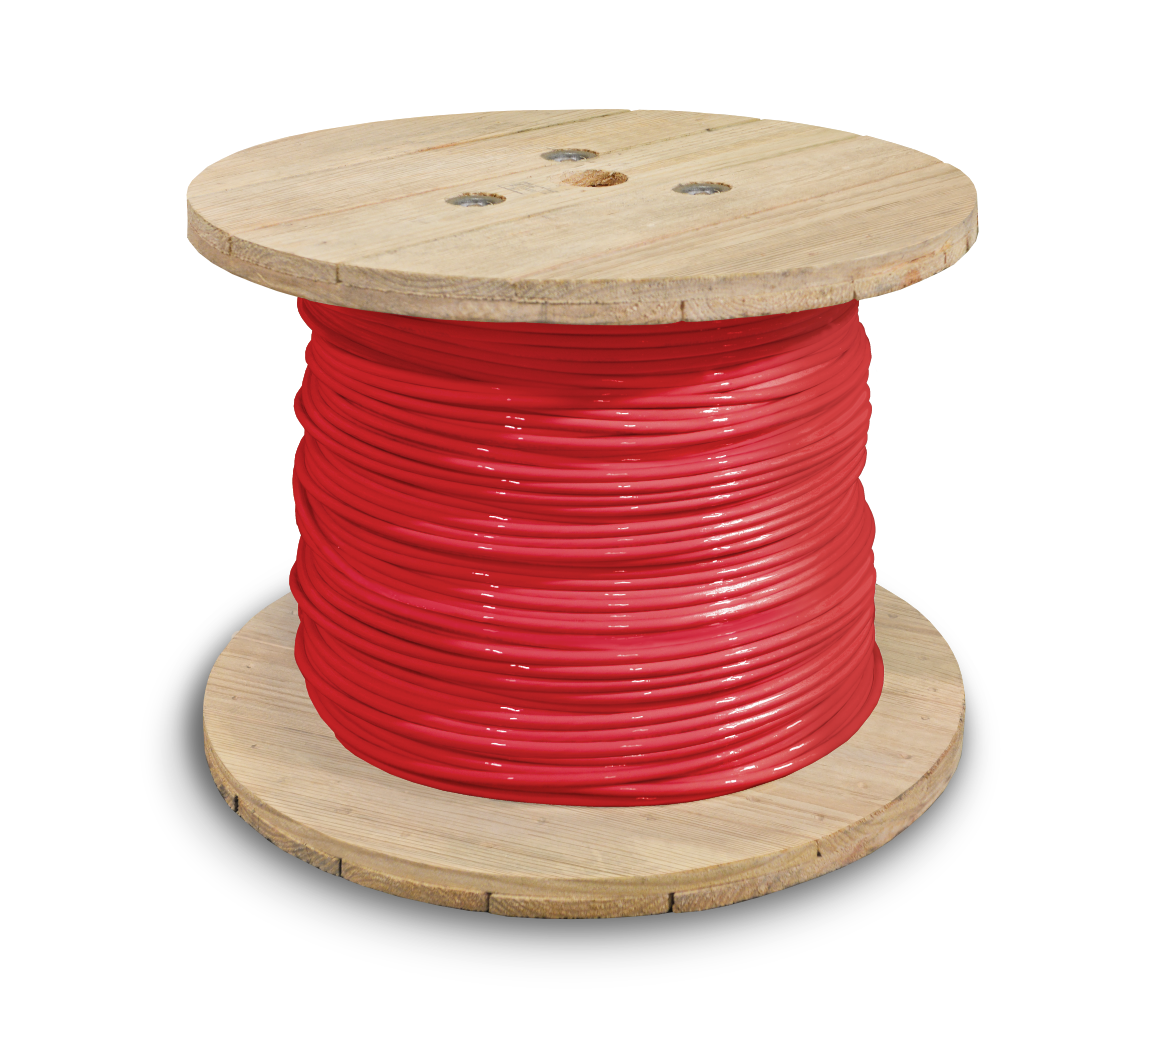 39670_THHN_1awg_2500ft_Red